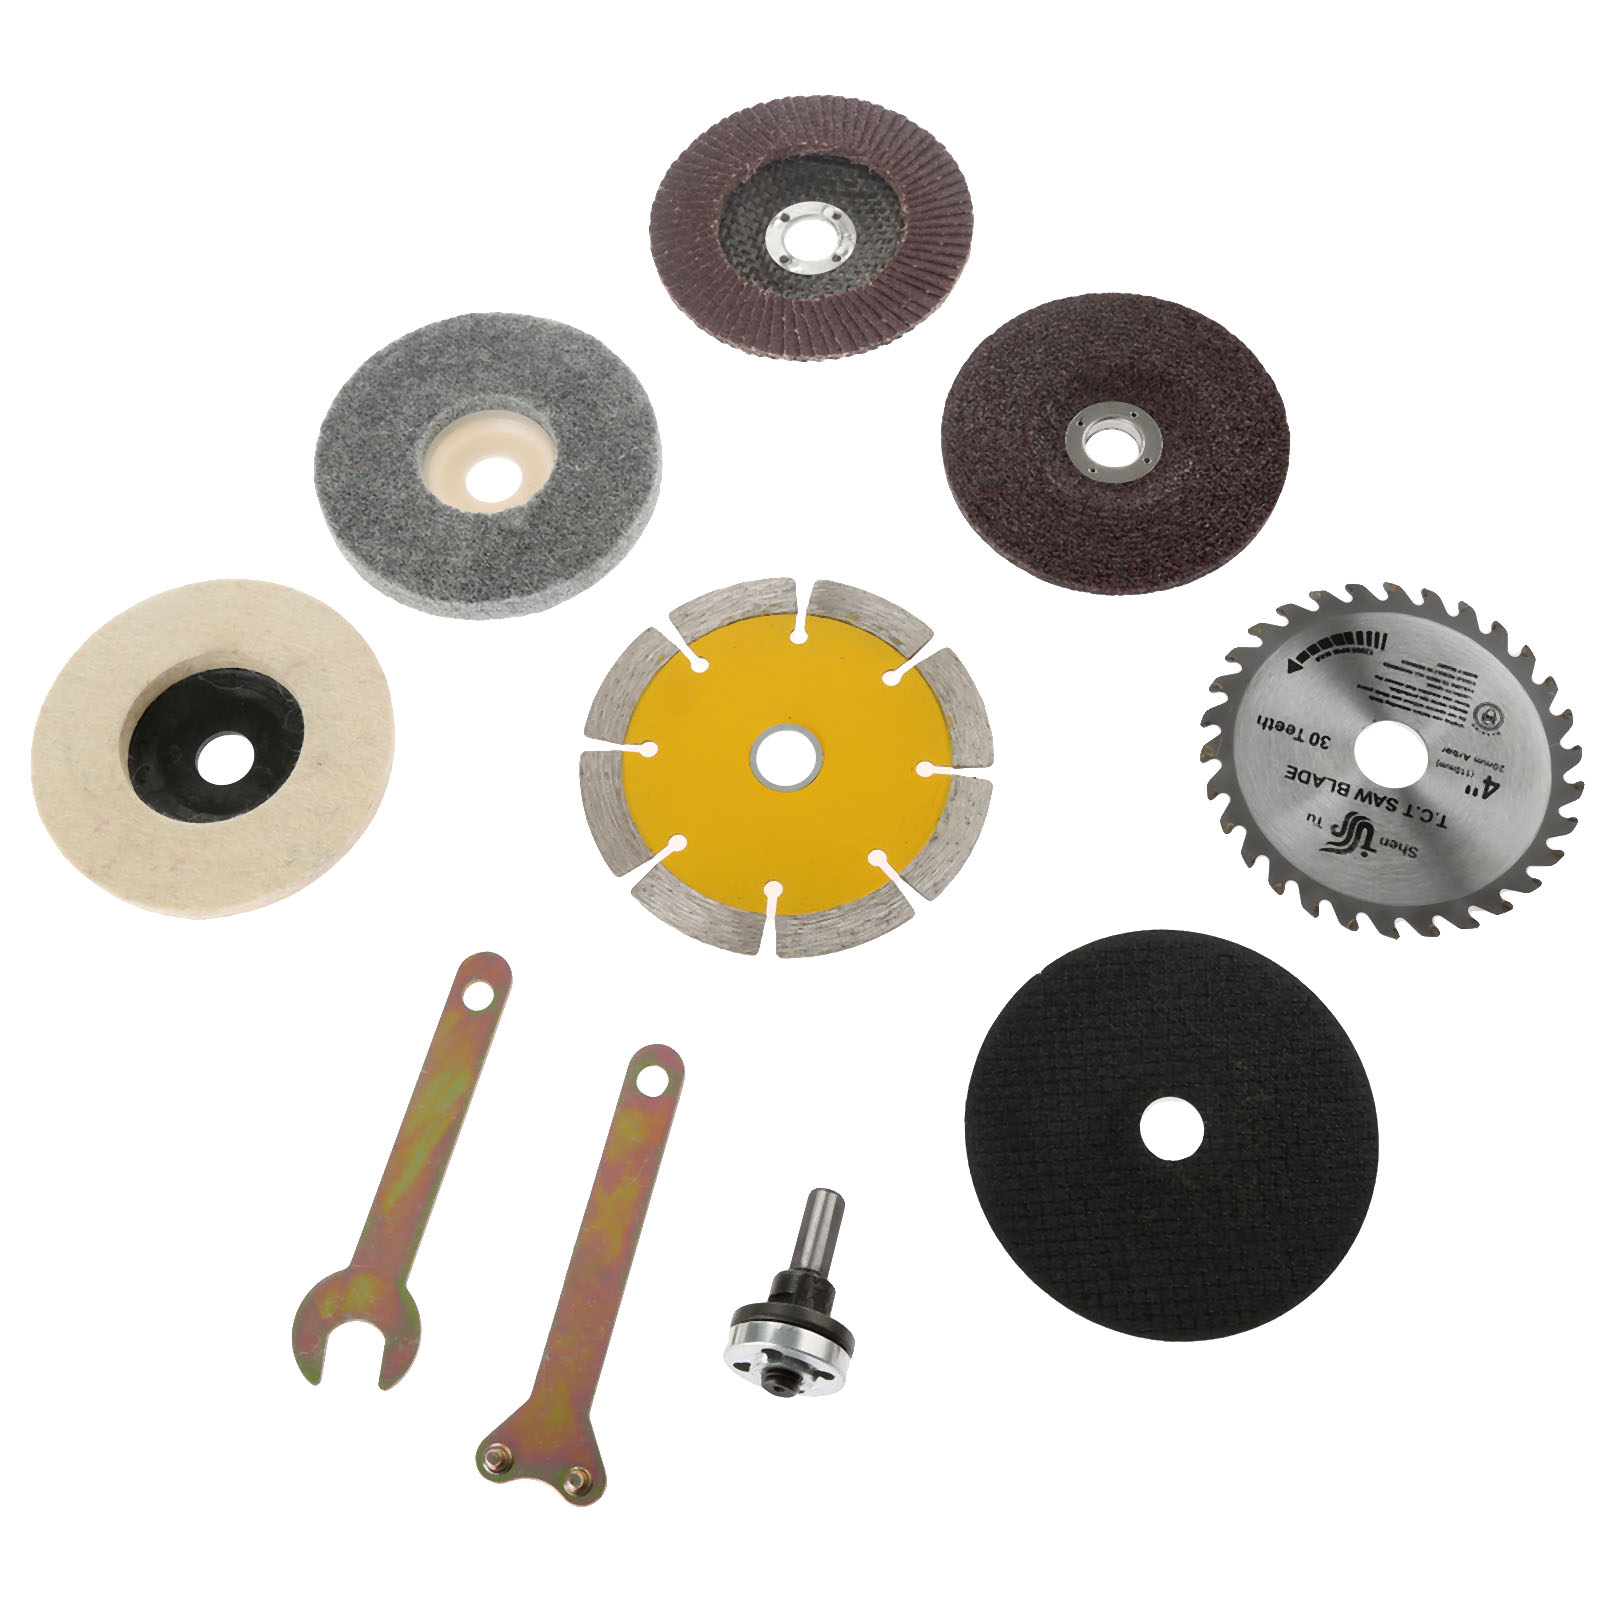 10Pcs Conversion Shank Accessories Spanner Drill Metal Cutting Polishing Pad Marble Grinding Wheel Saw Blade for Electric Drill in Power Tool Accessories from Tools